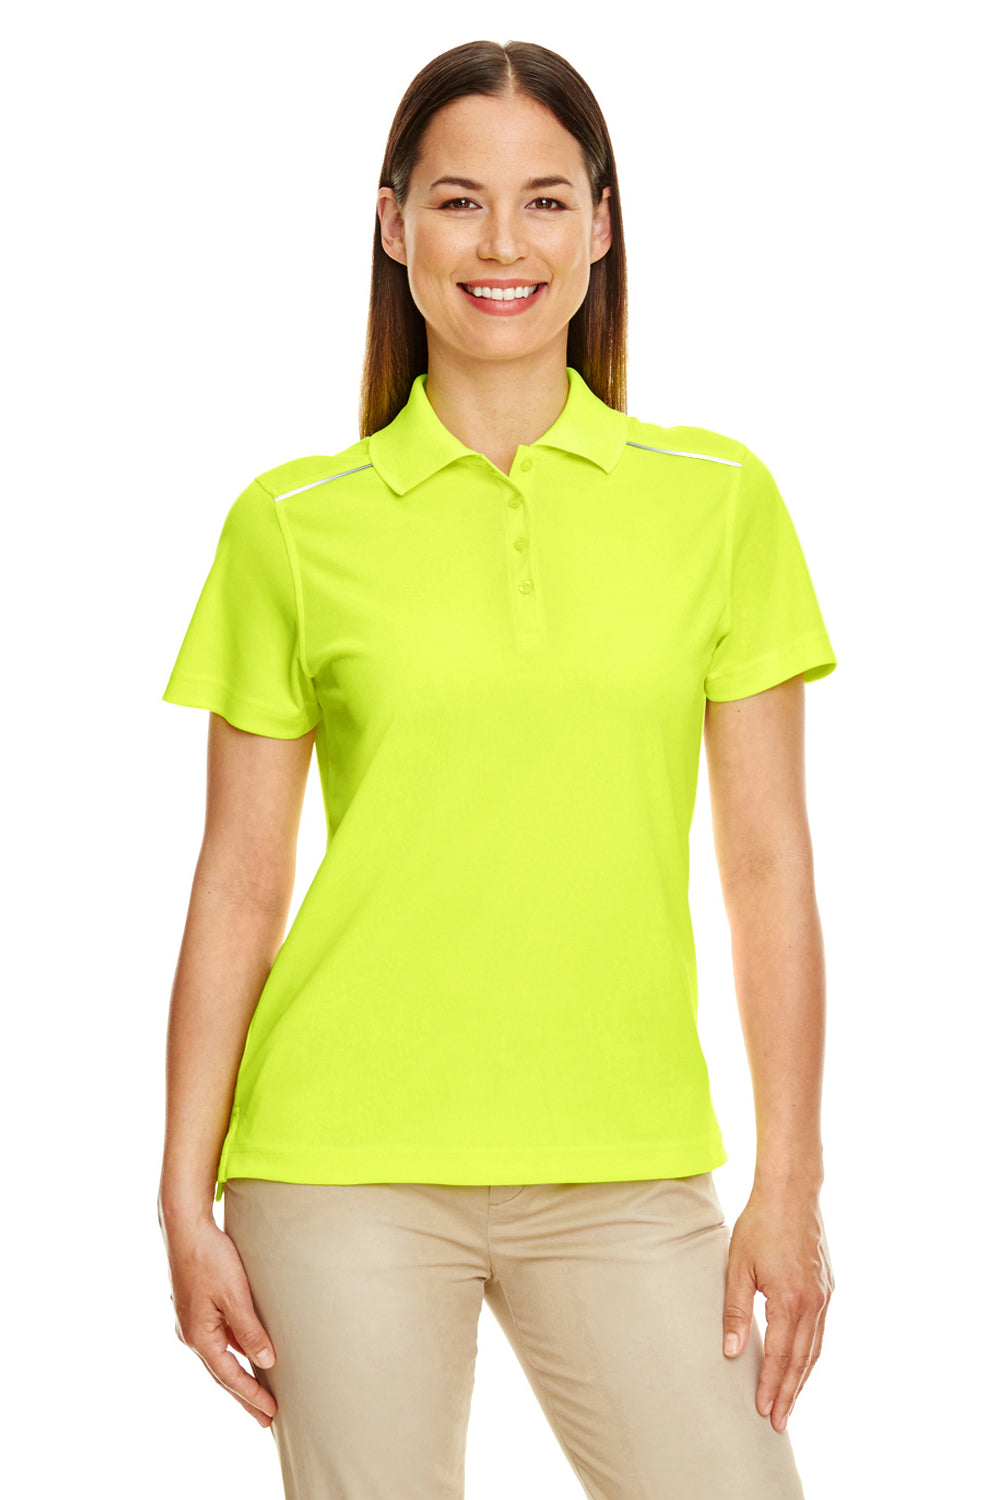 Core 365 78181R Womens Radiant Performance Moisture Wicking Short Sleeve Polo Shirt Safety Yellow Front